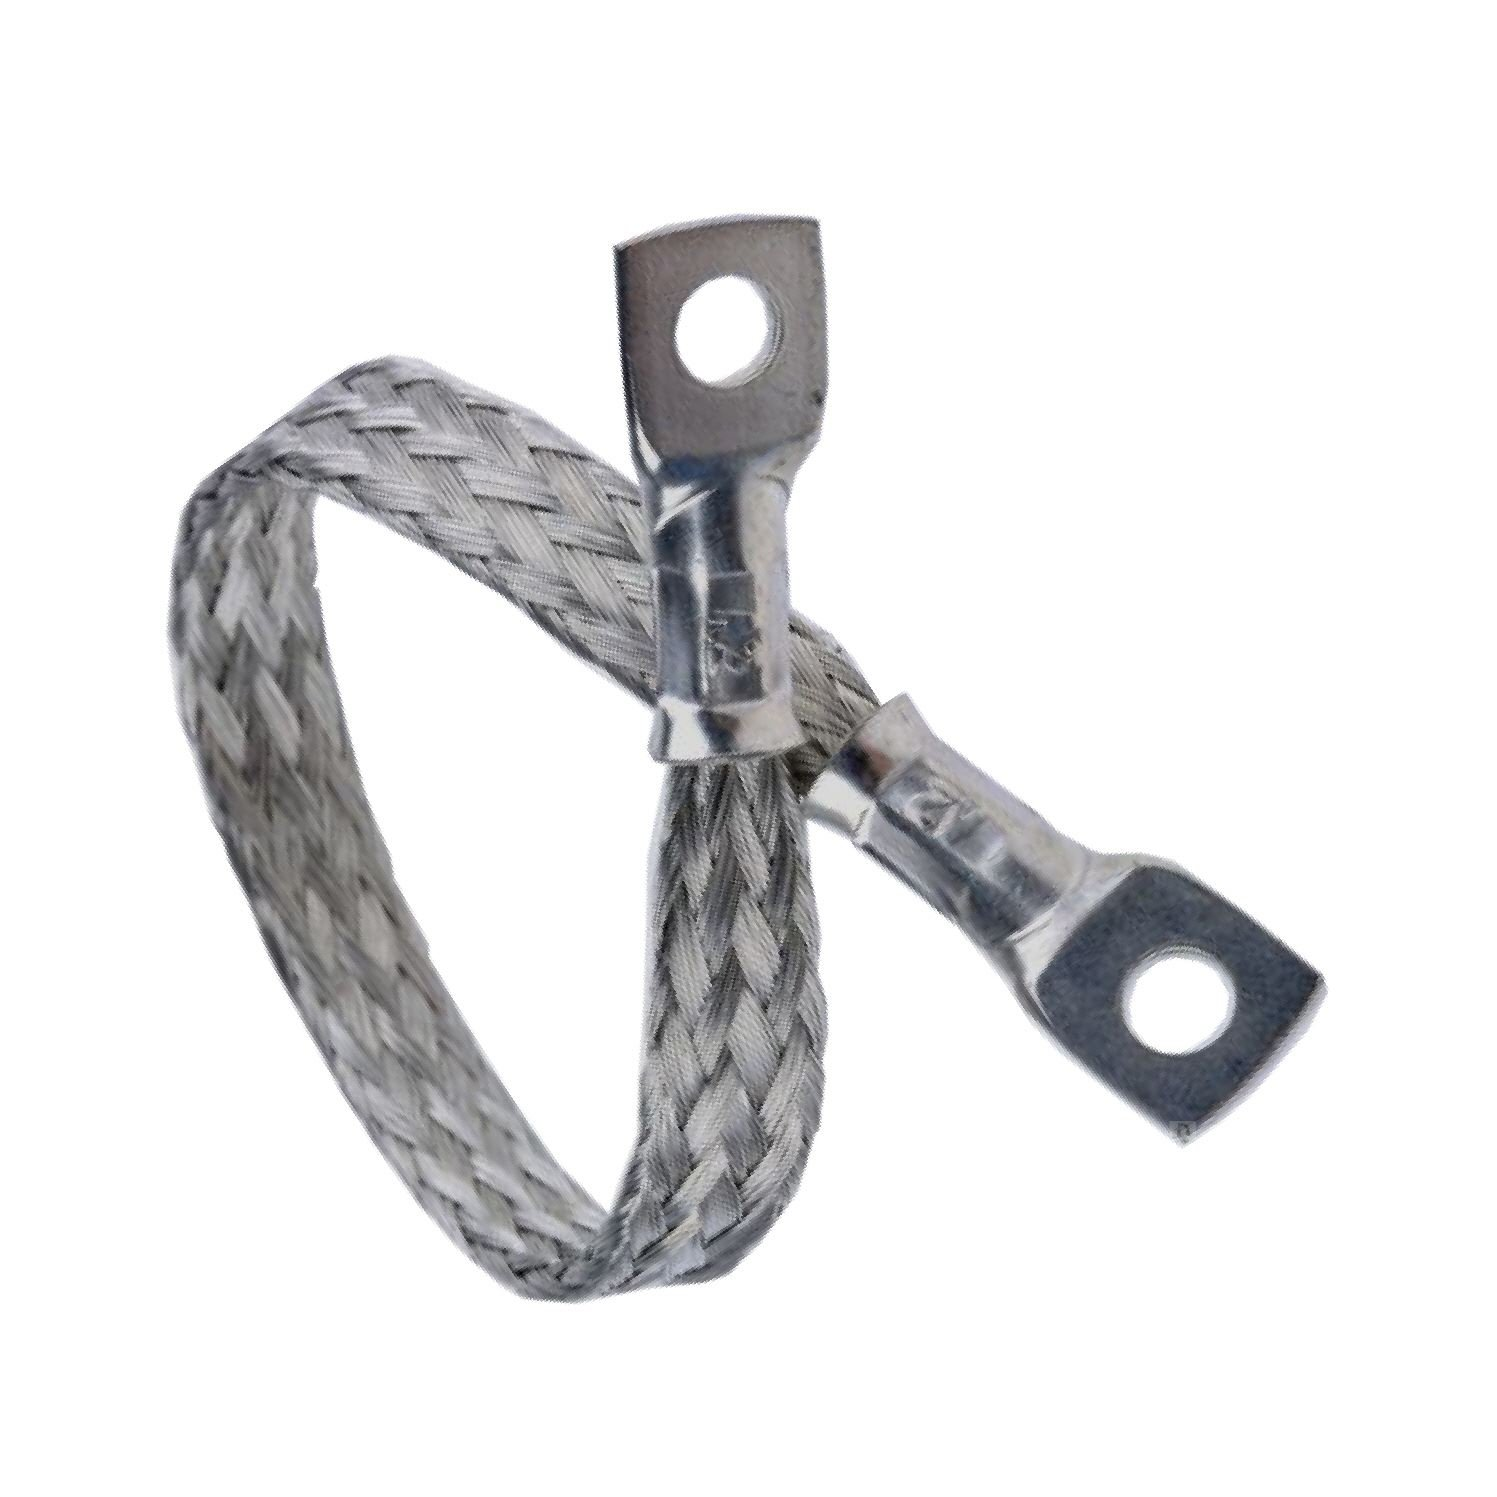 Earth Straps Round Copper Braid (L)93mm (Dia)M6 Current Rating 45A